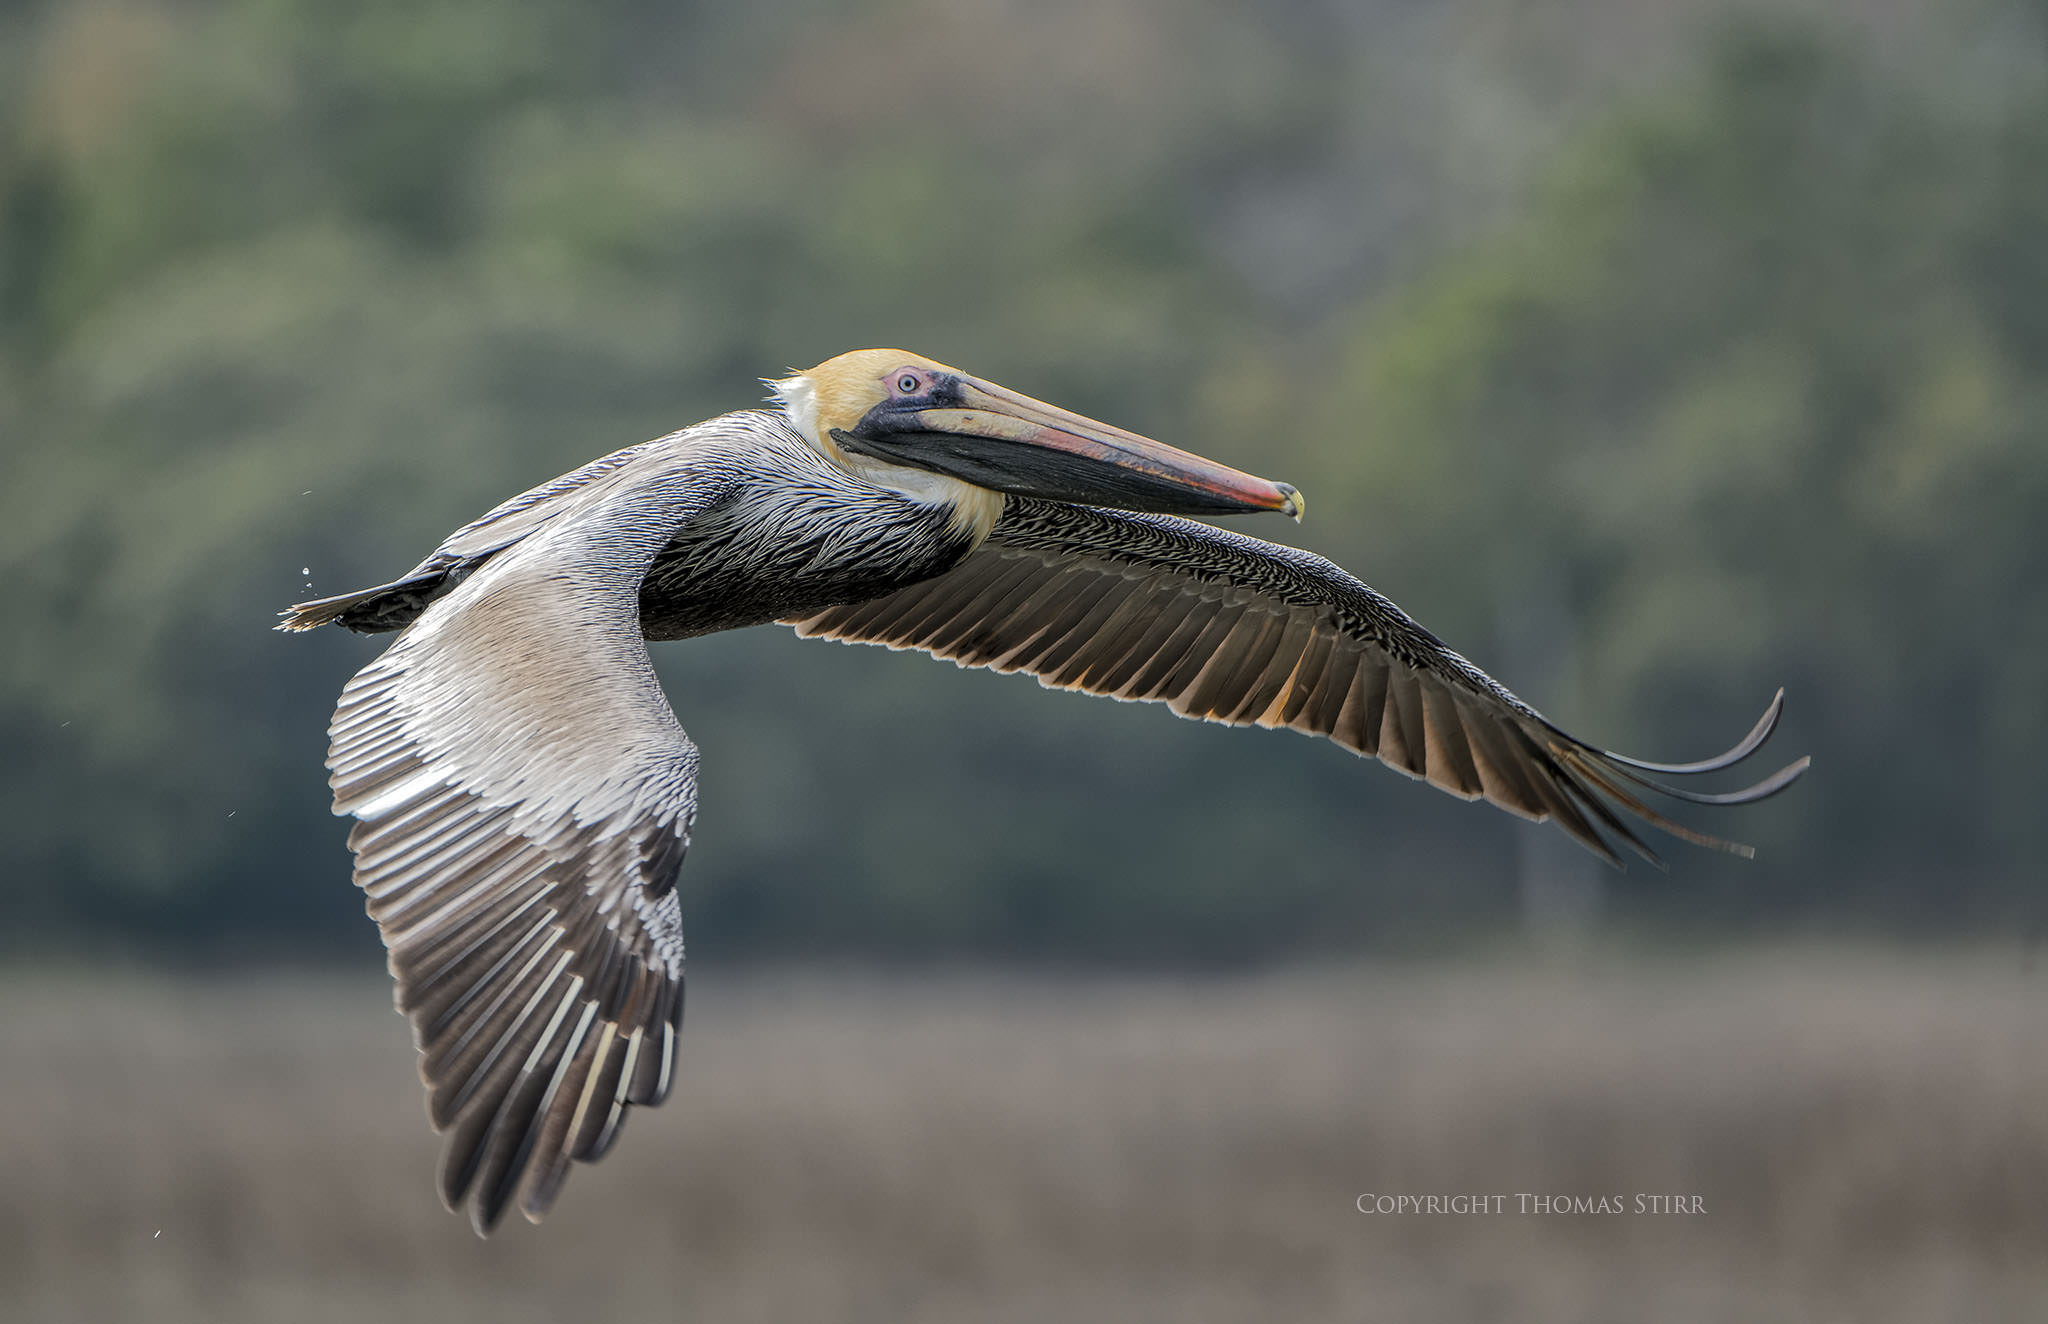 Tips on Photographing Hand-Held with Telephoto Lenses